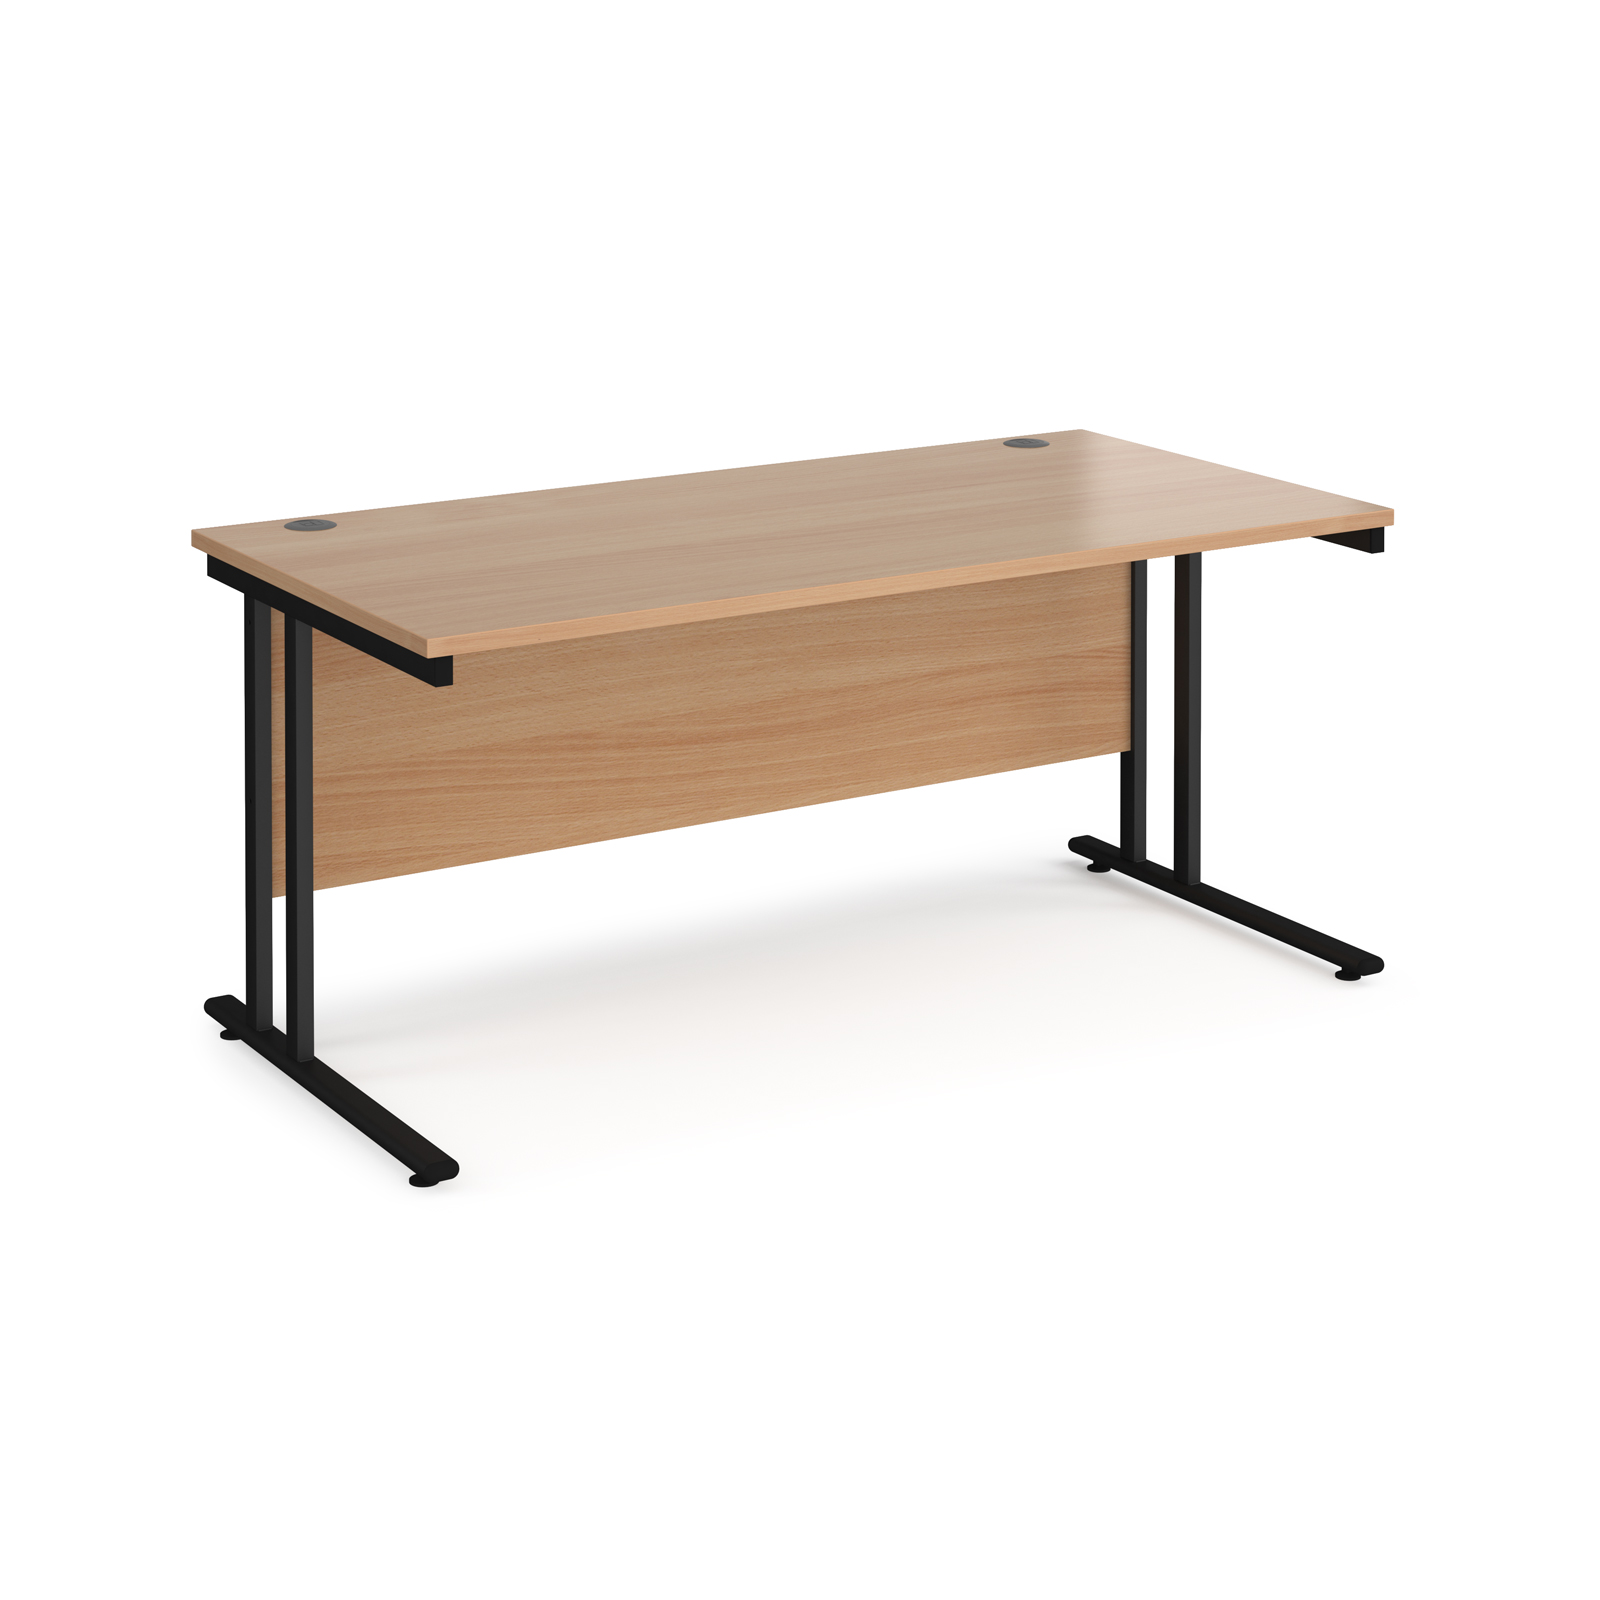 Maestro 25 straight desk 1600mm x 800mm - black cantilever leg frame, beech top